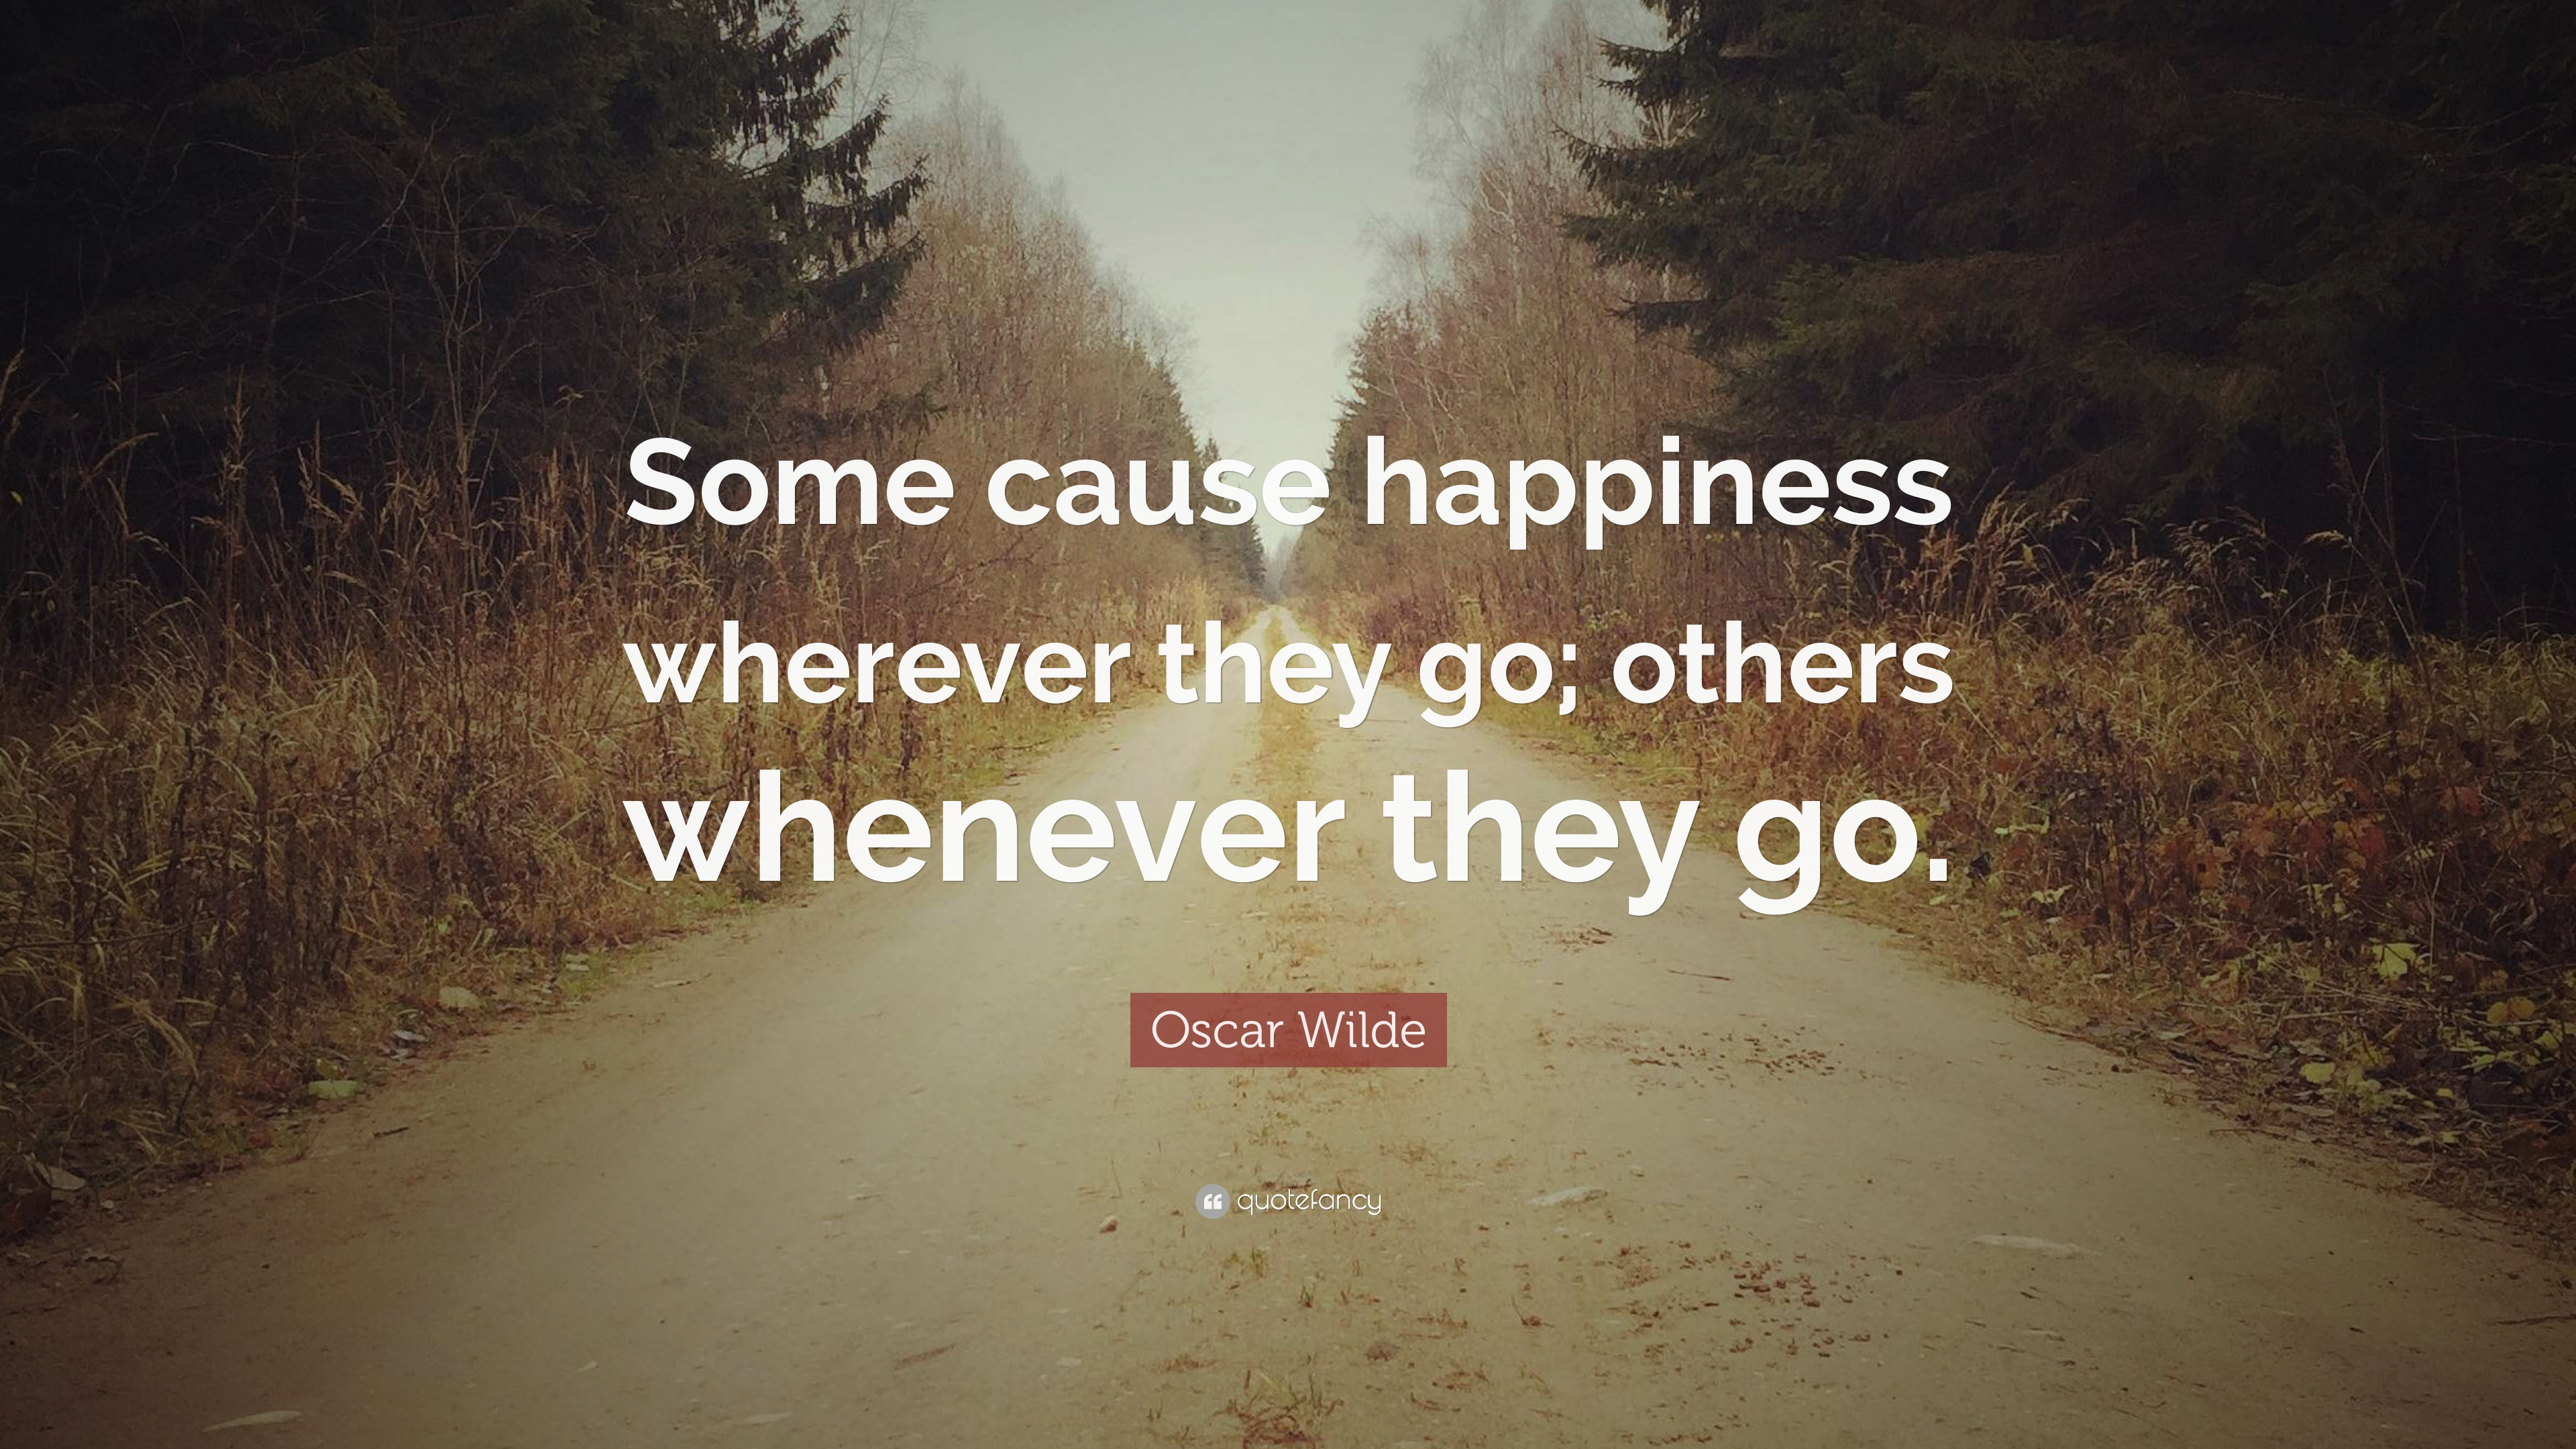 """an essay happines Essay about happiness we have no """"right to happiness"""" according to fifth amendment, """"no person should be deprived of life, liberty, property or the pursuit of happiness."""